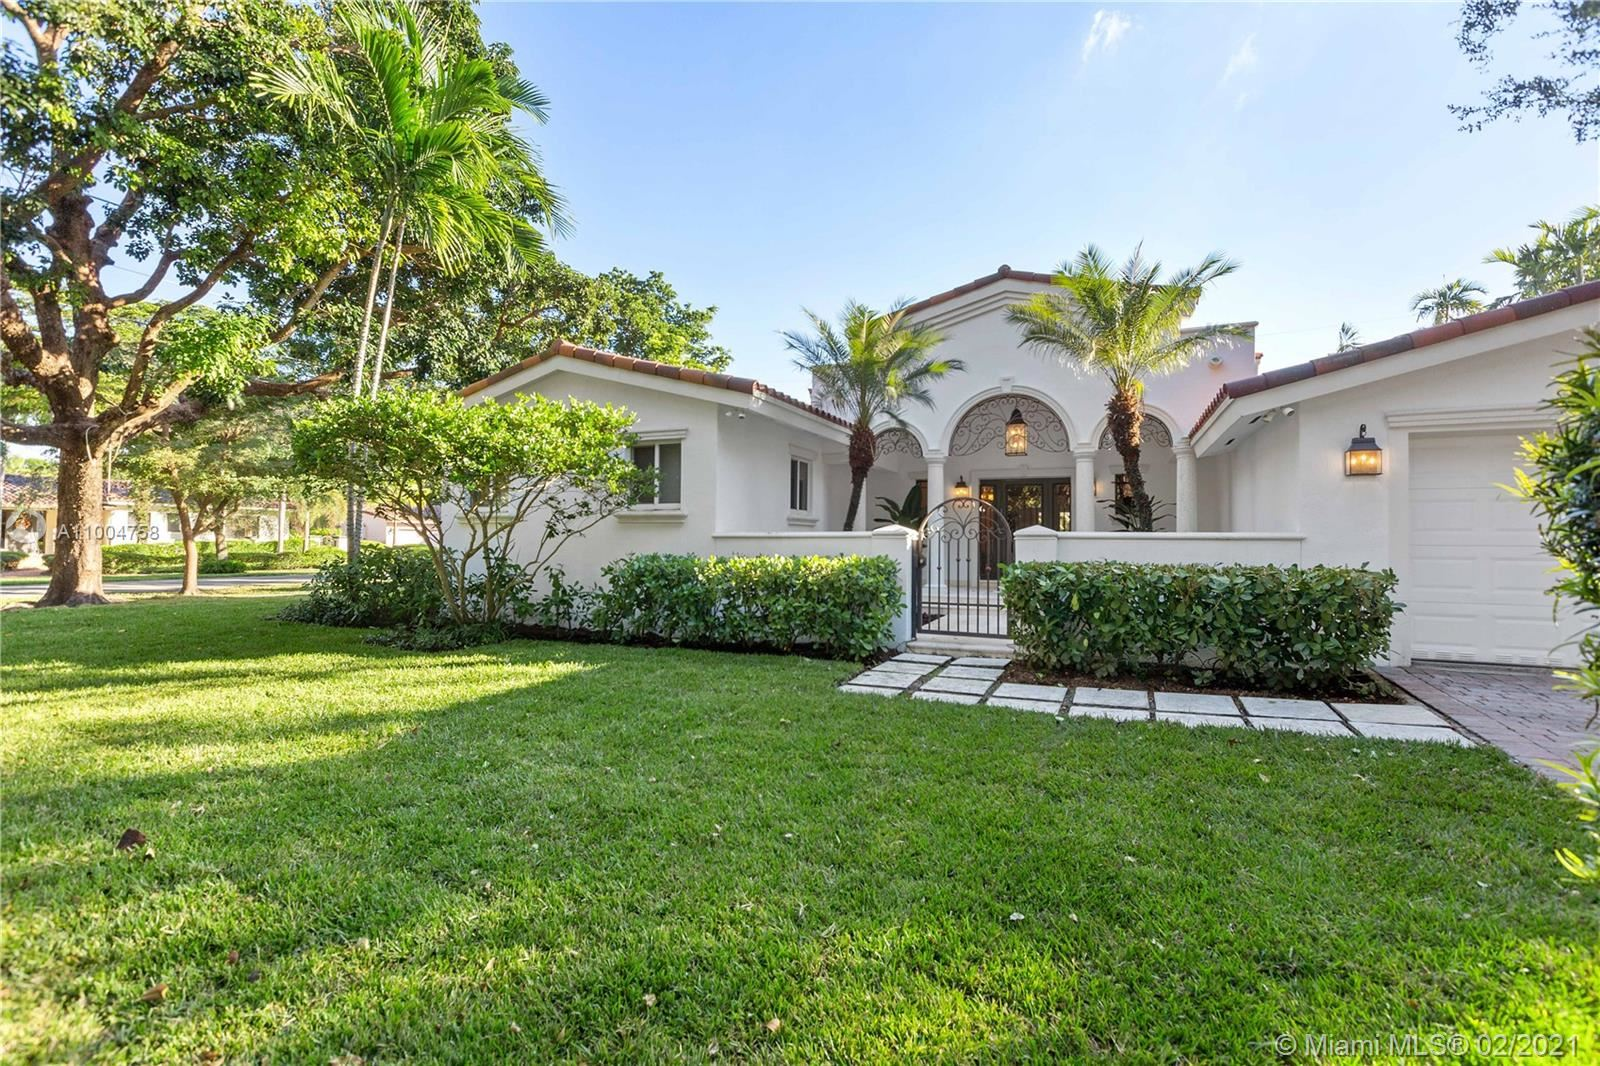 6002 CELLINI ST, Coral Gables, FL 33146 - #: A11004758